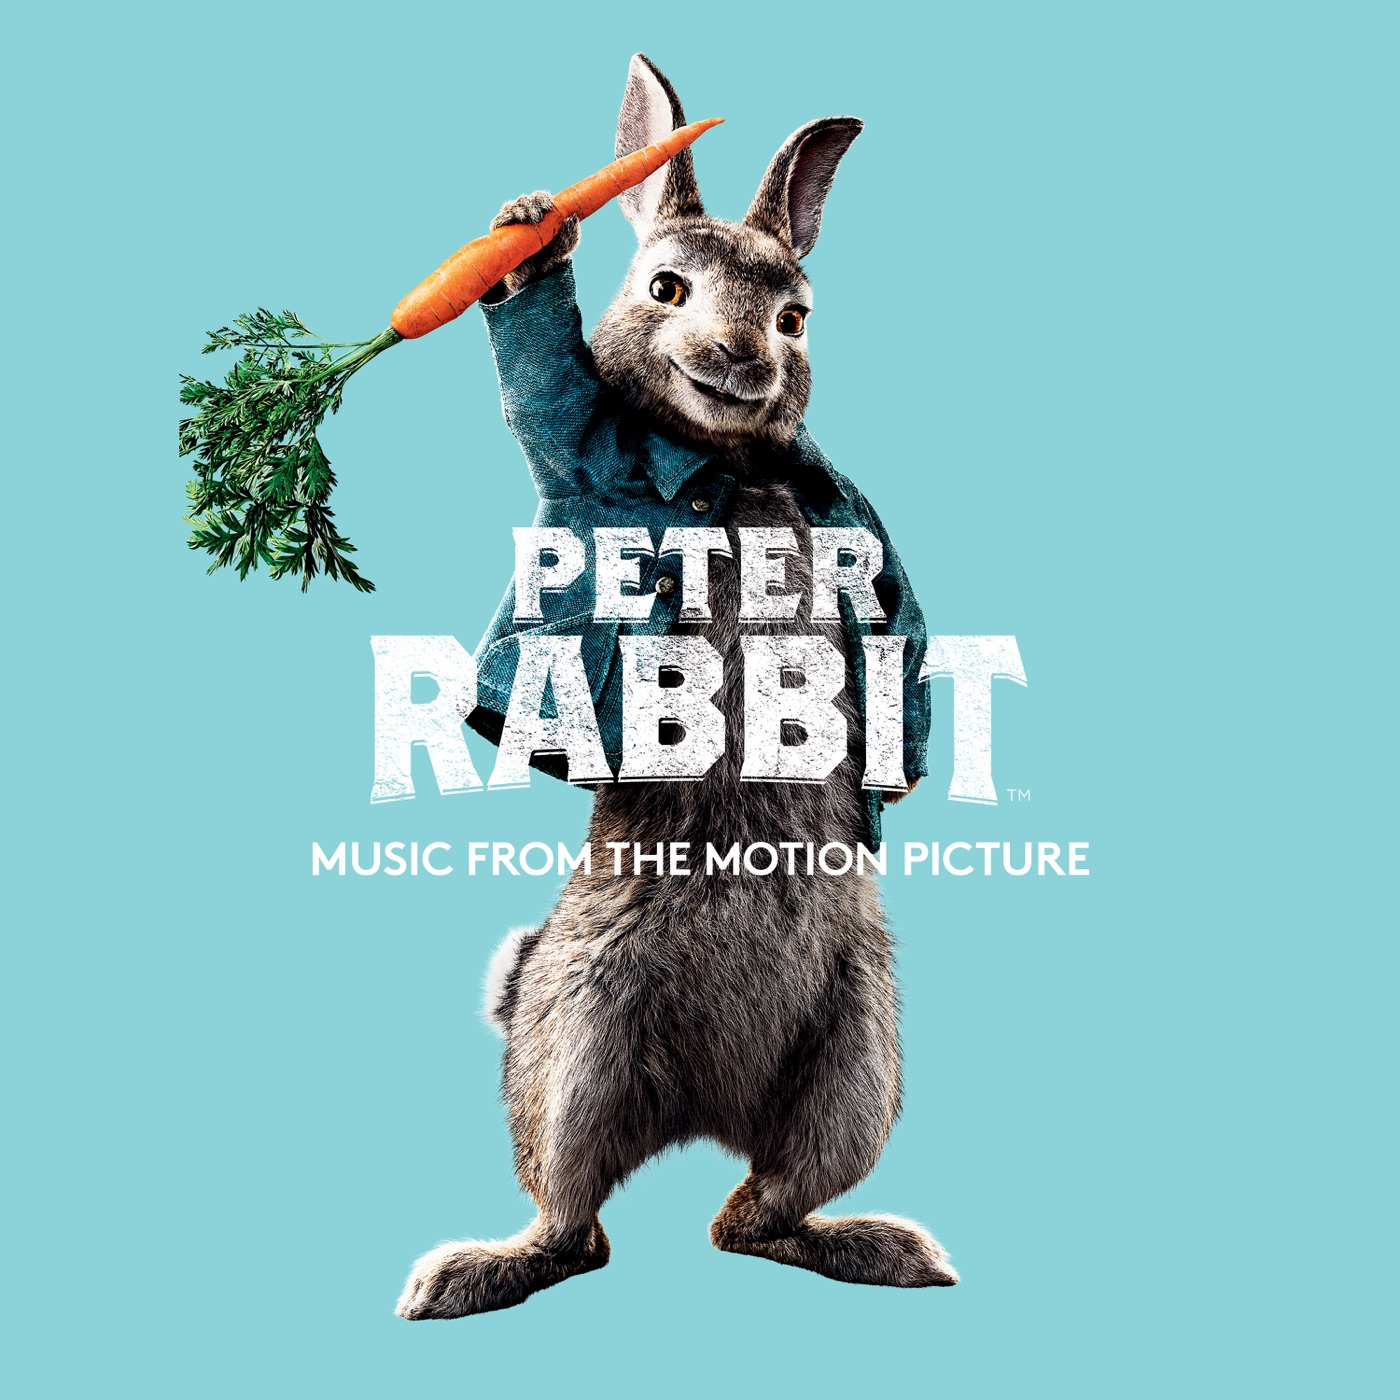 Various Artists - Peter Rabbit (Music from the Motion Picture) - Single Cover